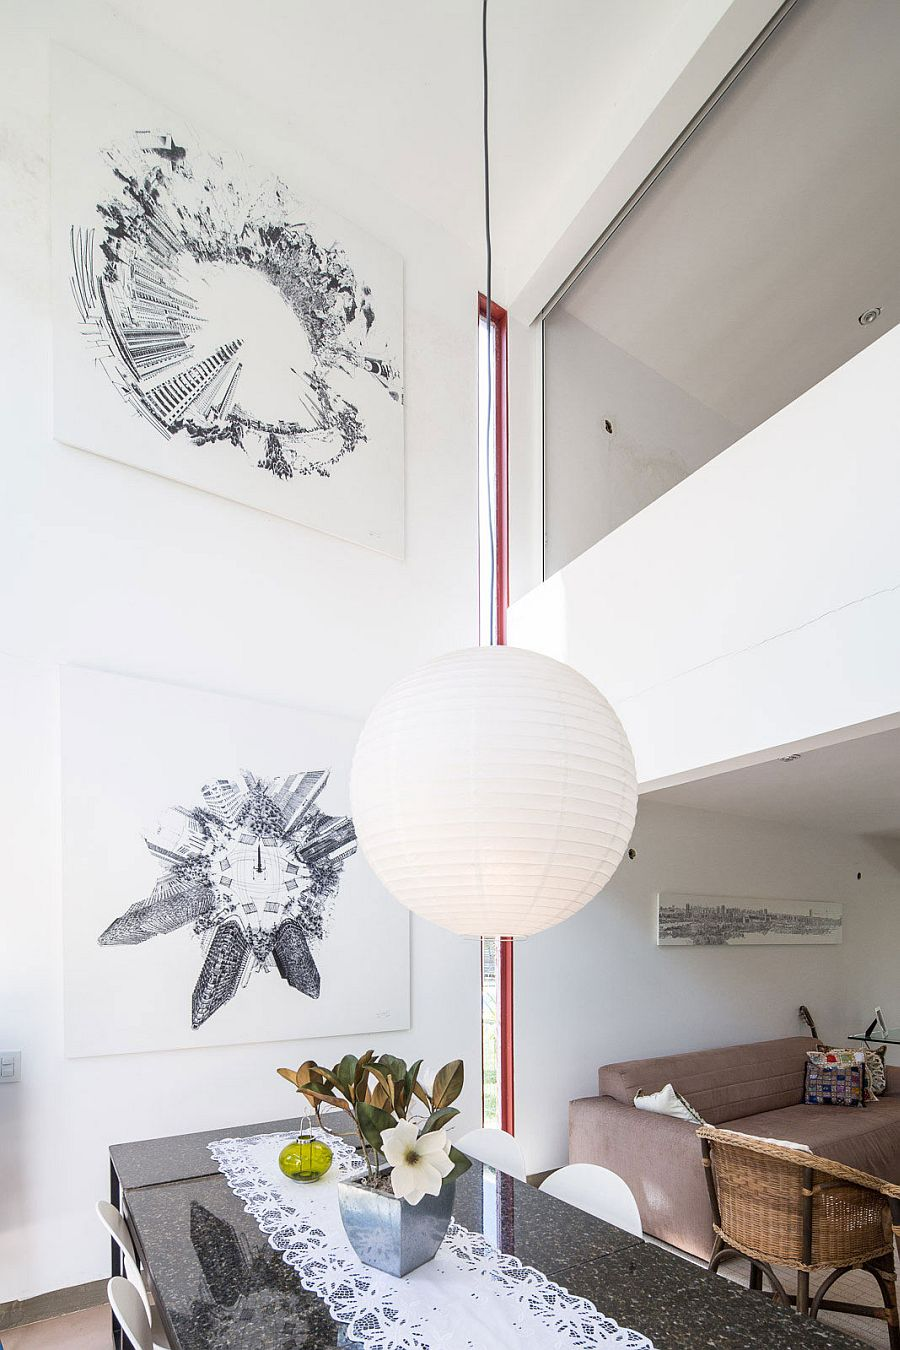 Black and white artwork creates a gallery style wall in the dining space